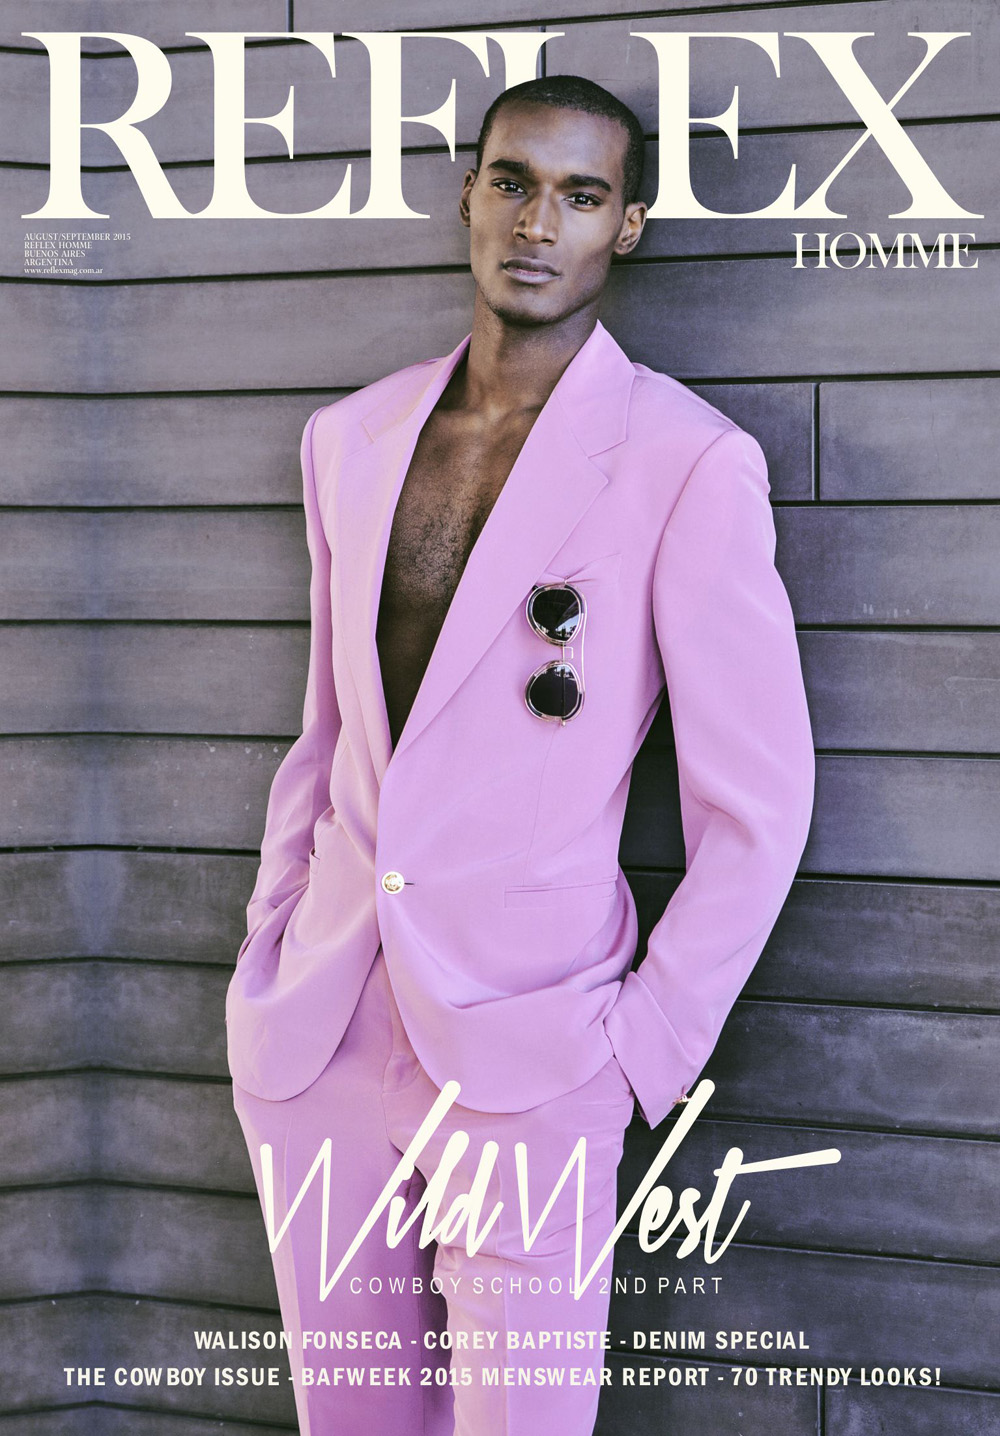 Top model Corey Baptiste (VNY Models) fronts new September 2015 cover issue for Reflex Magazine, photographed by Horacio Hamlet